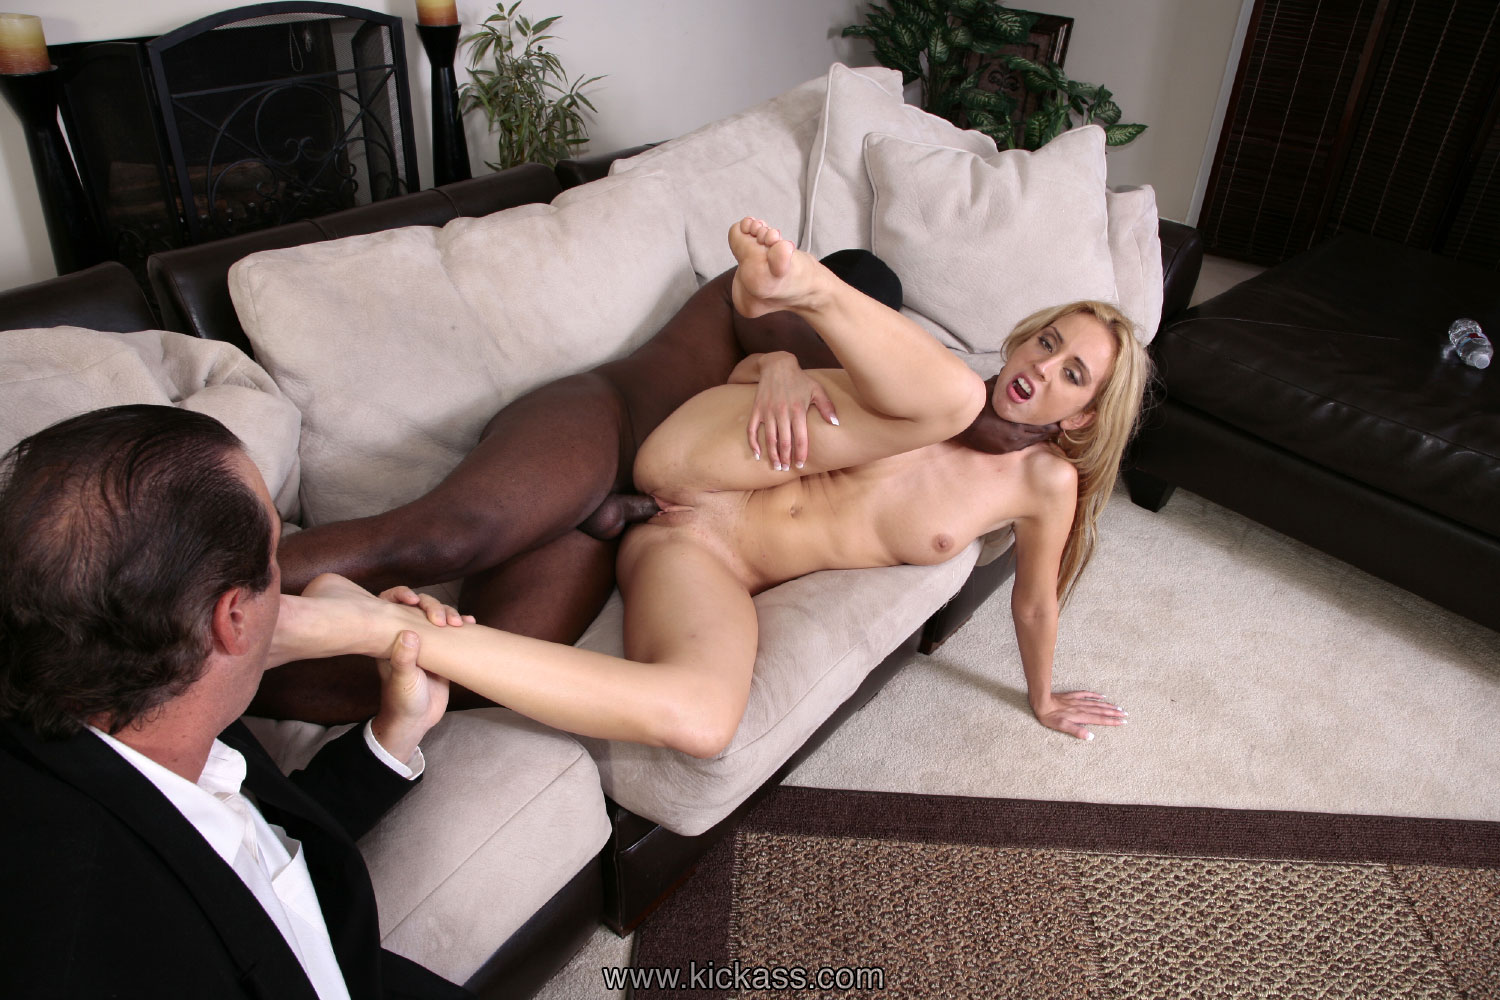 Kelly wells stretches her ass with a brutal dildo 2